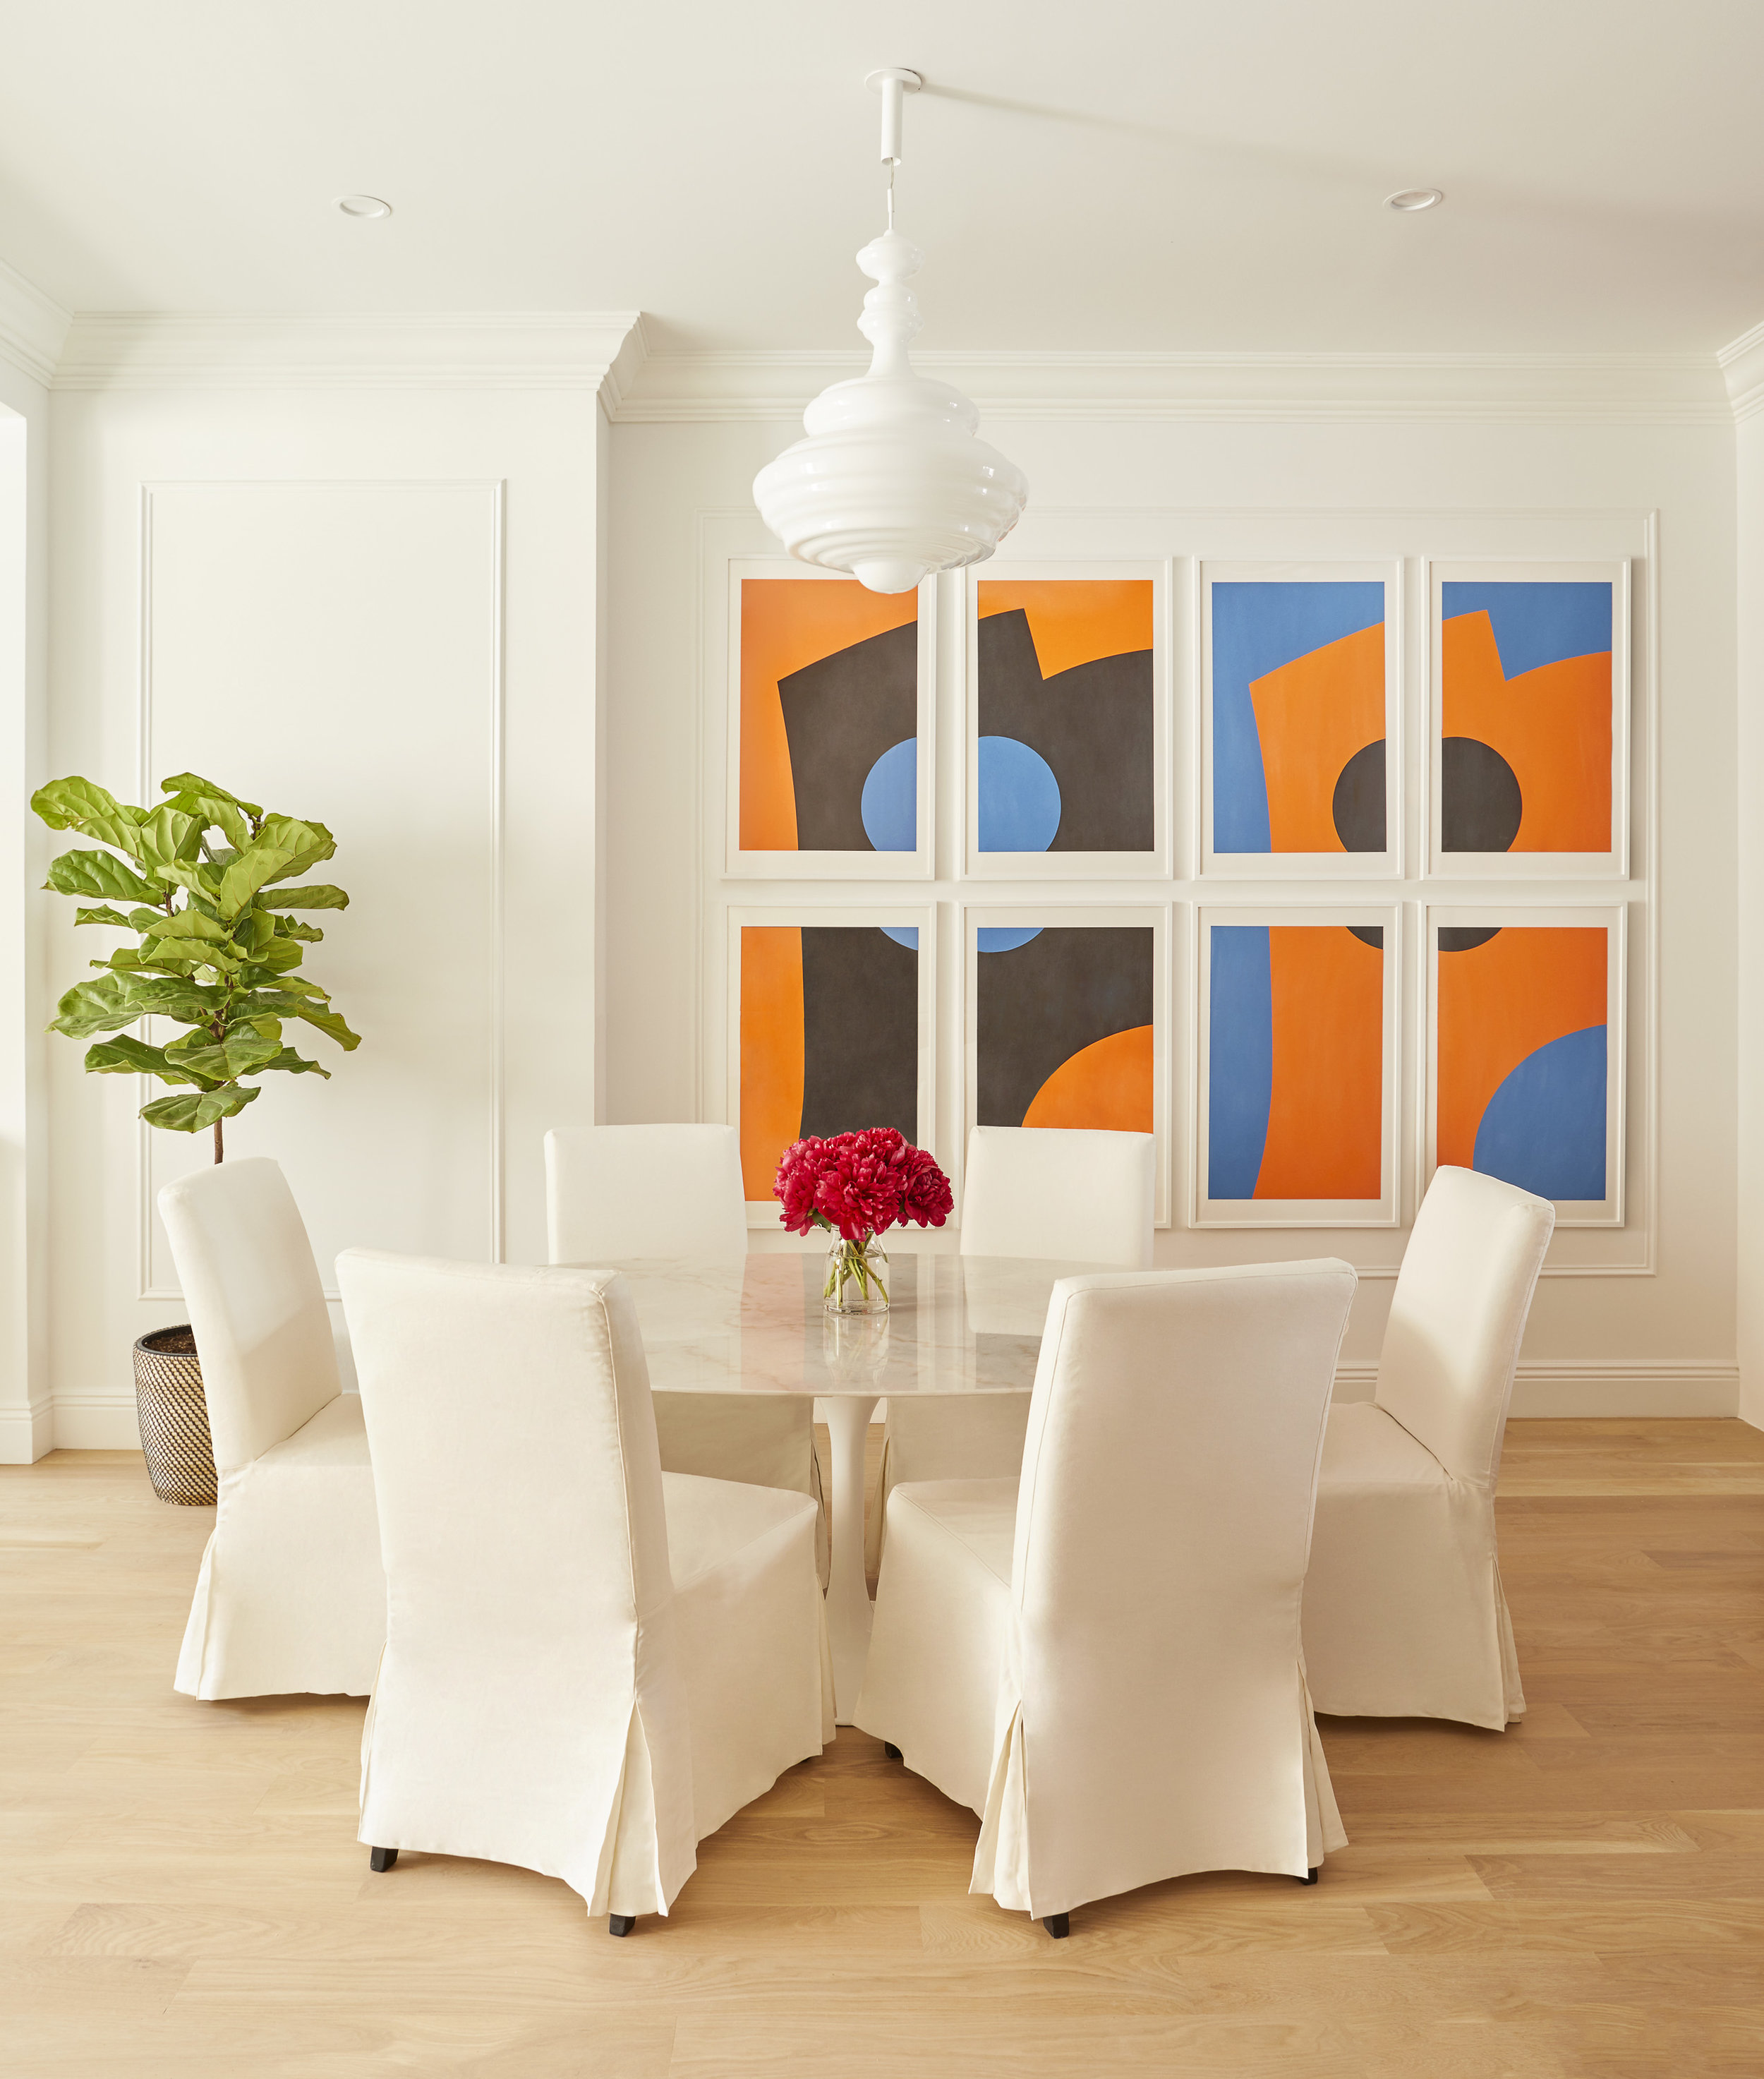 TBHCo_1706_56GarfieldPlace_202_HiRes.jpg